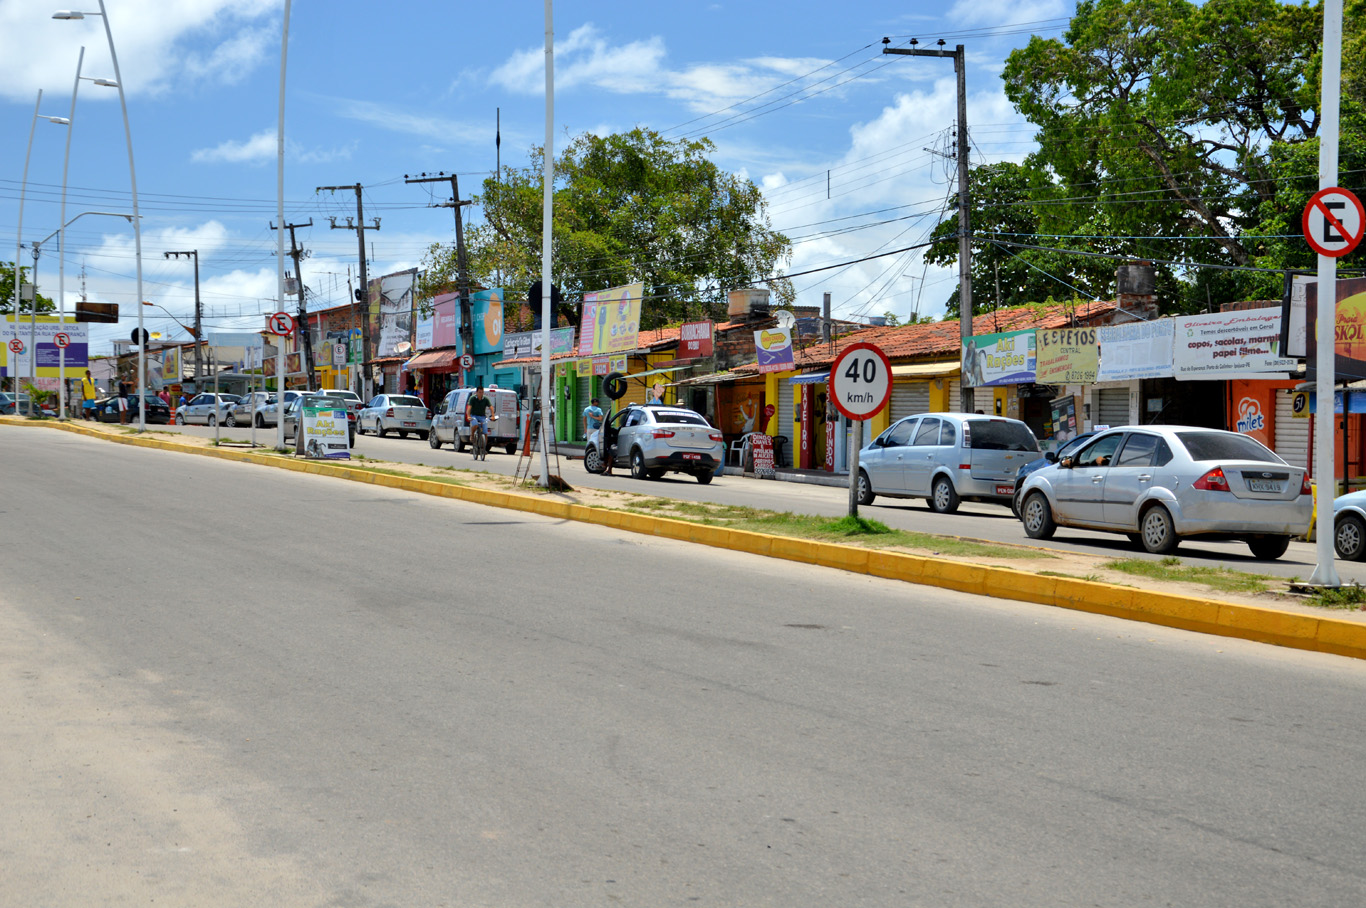 Main street in Porto de Galinhas